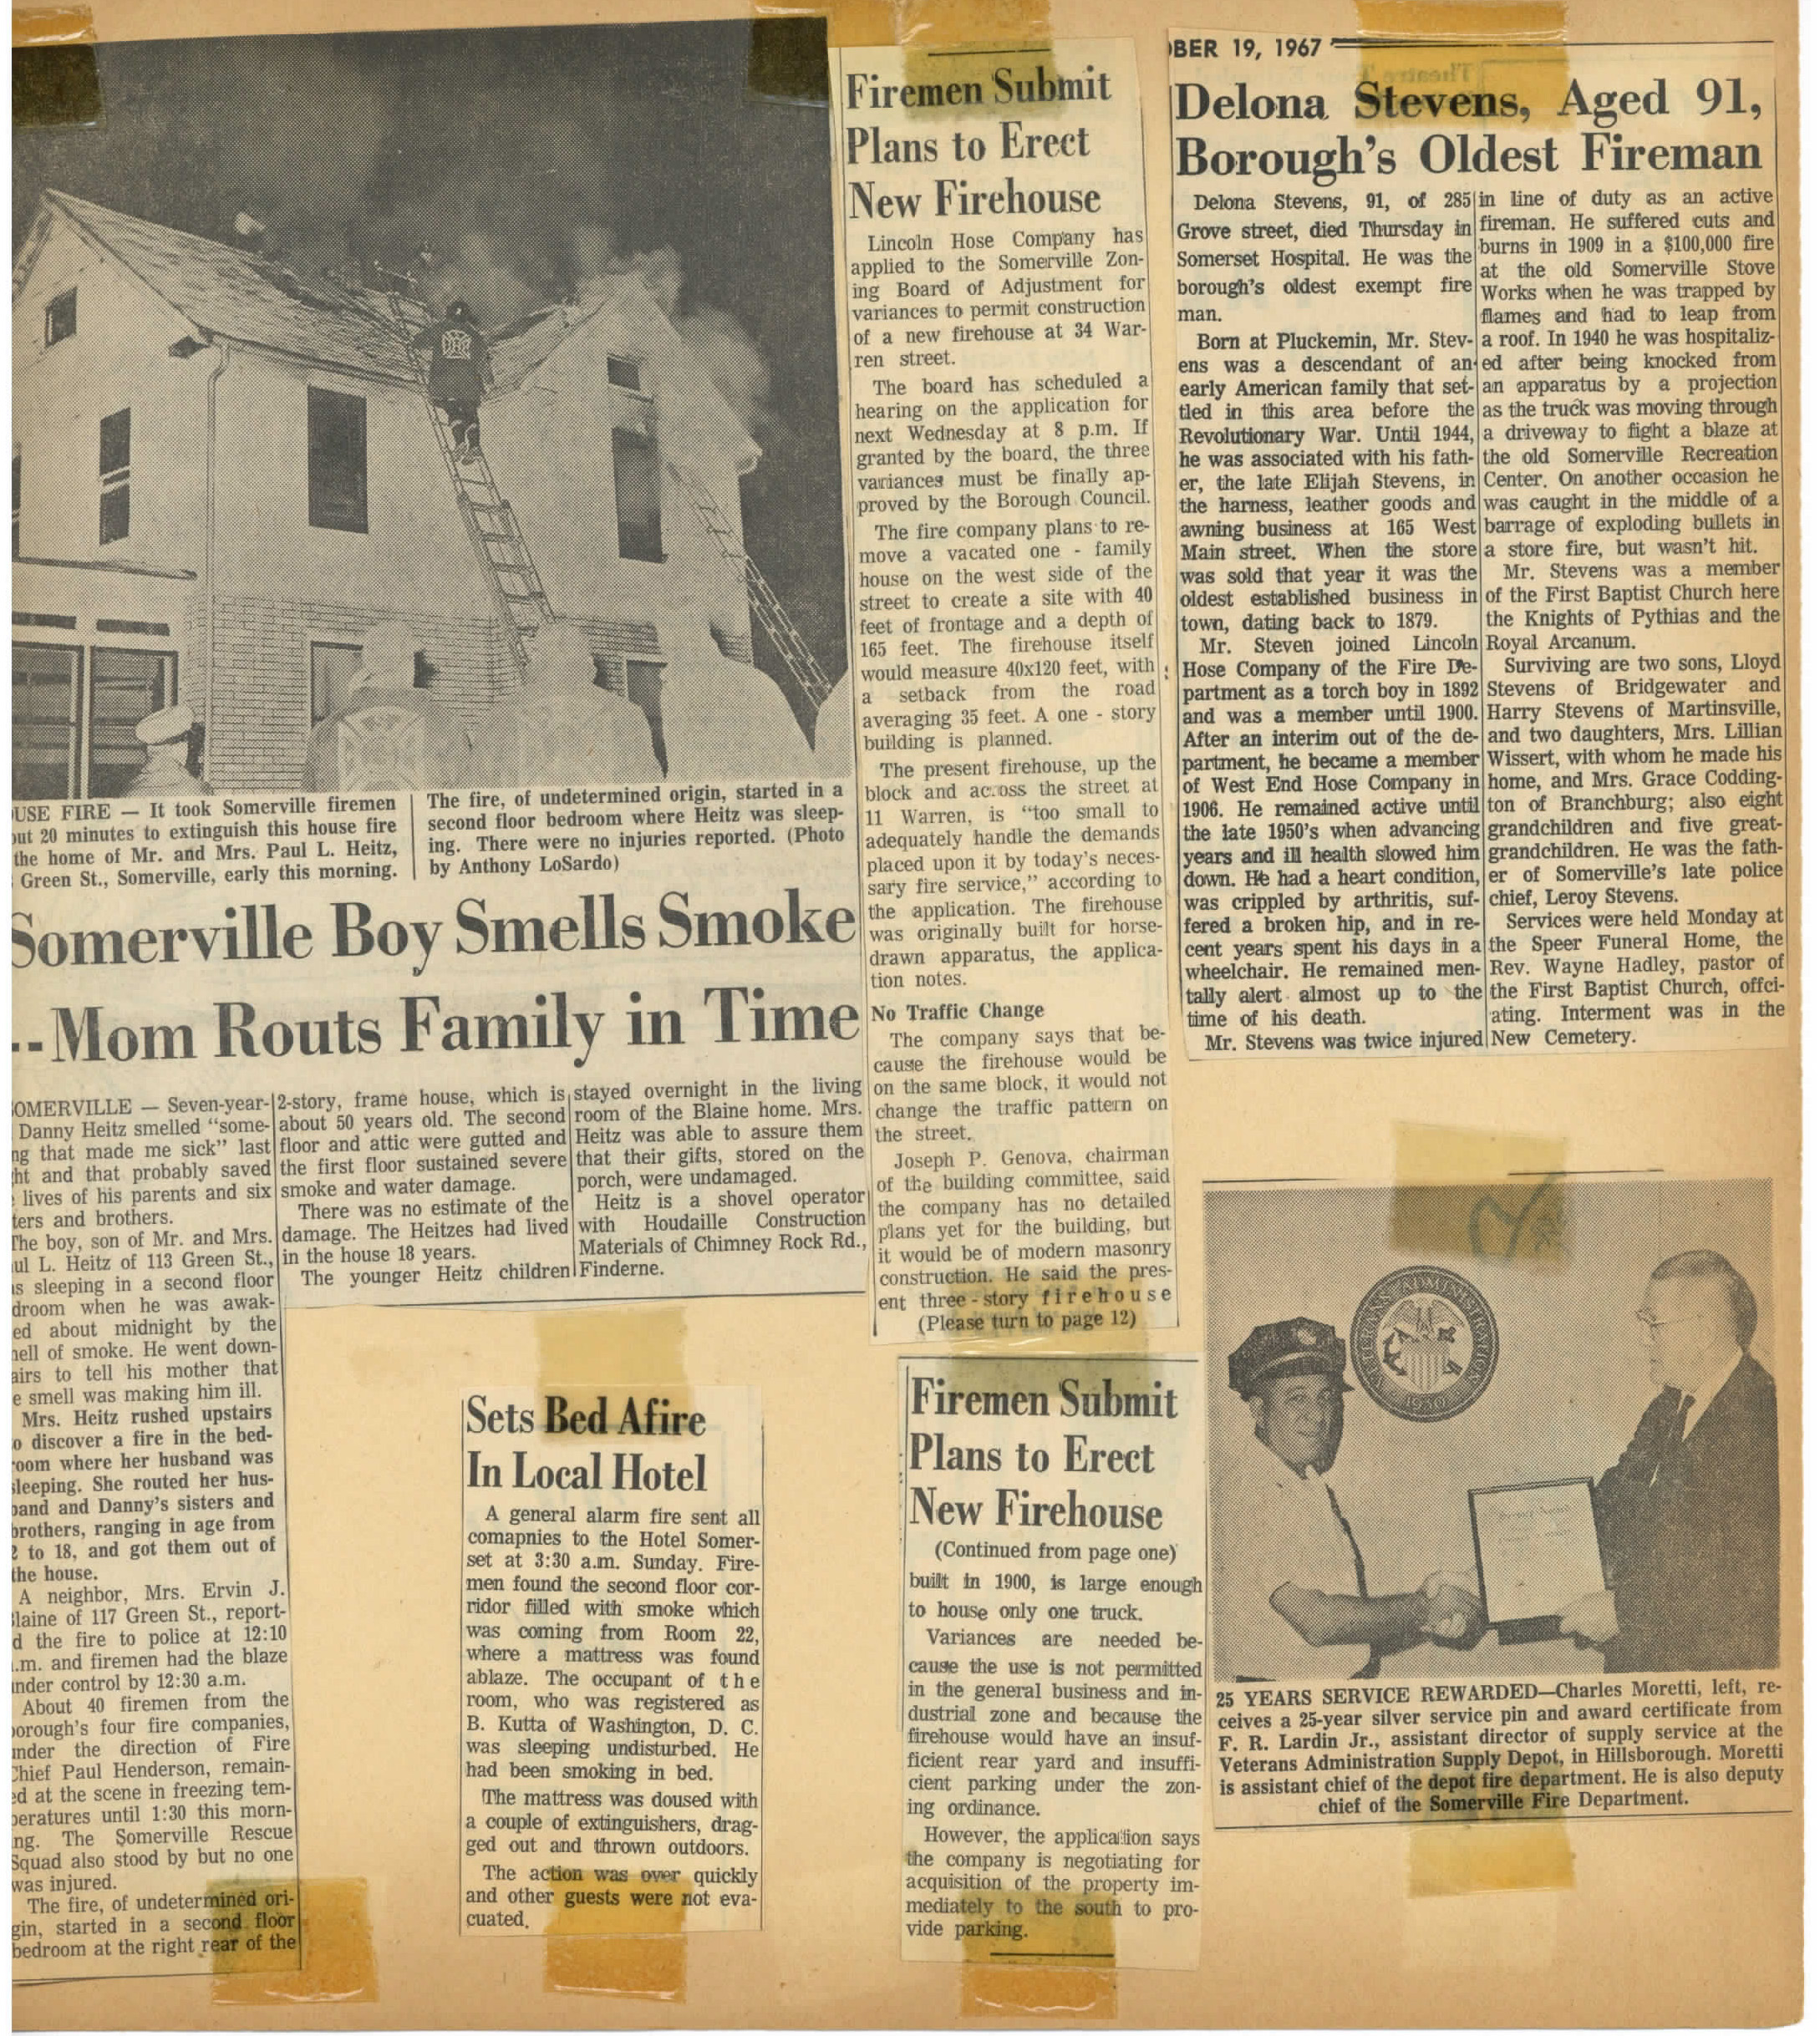 1967 Delona Stevens passing and fire.article_Page_1_Image_0001.jpg